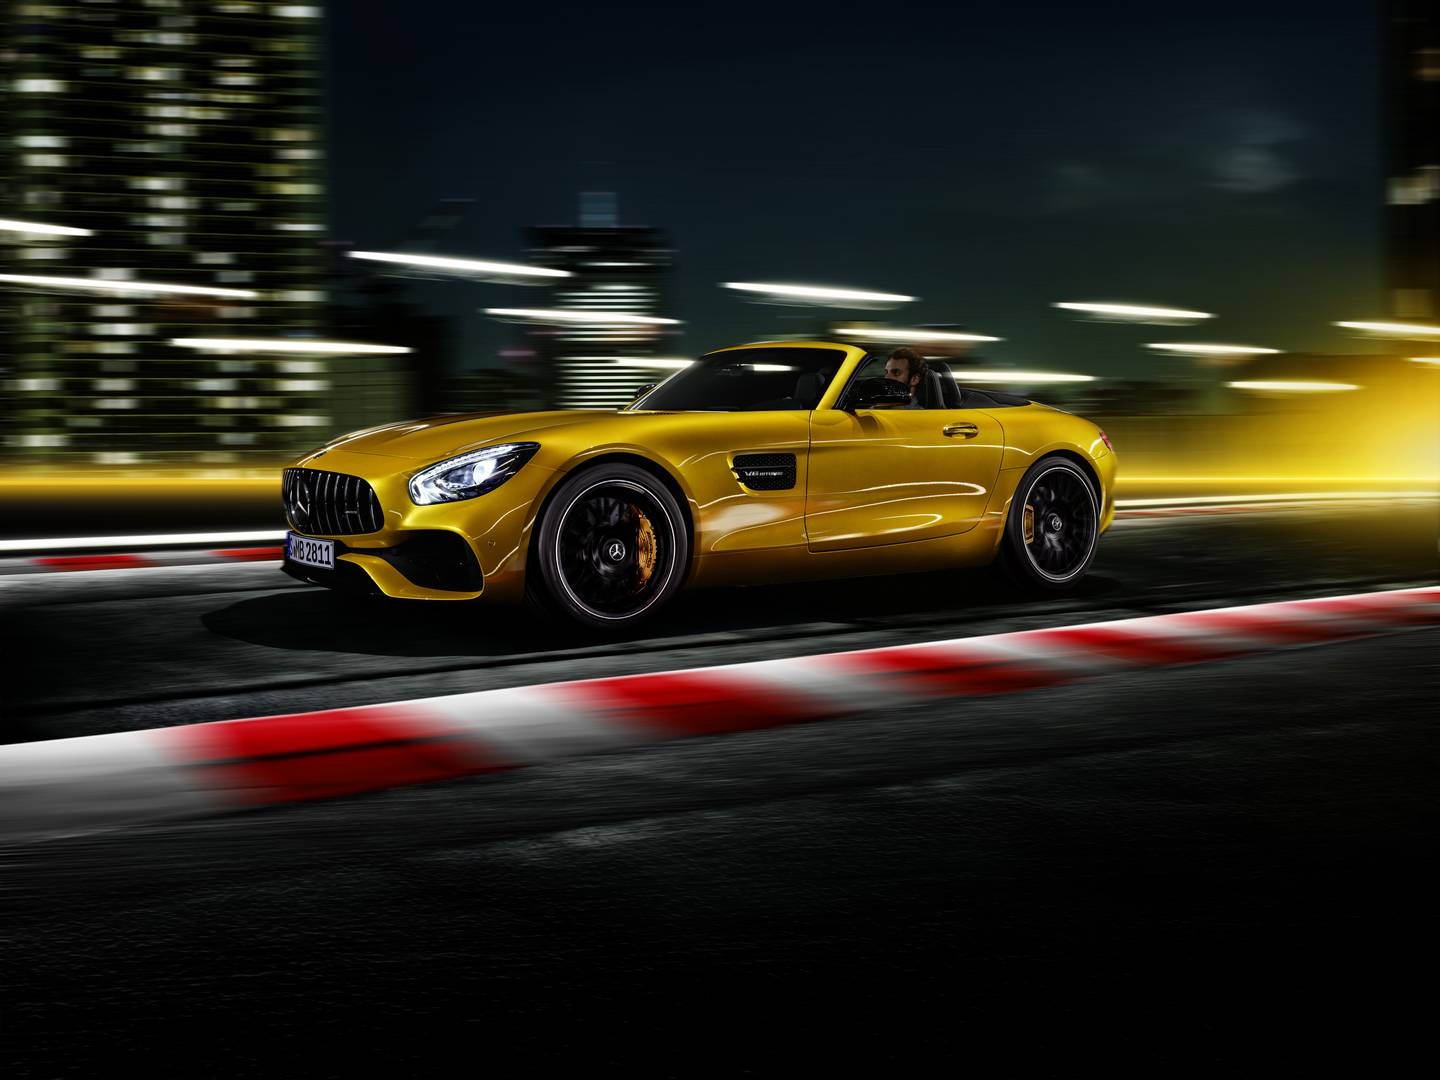 Mercedes-Benz Introduces New AMG GT S Roadster